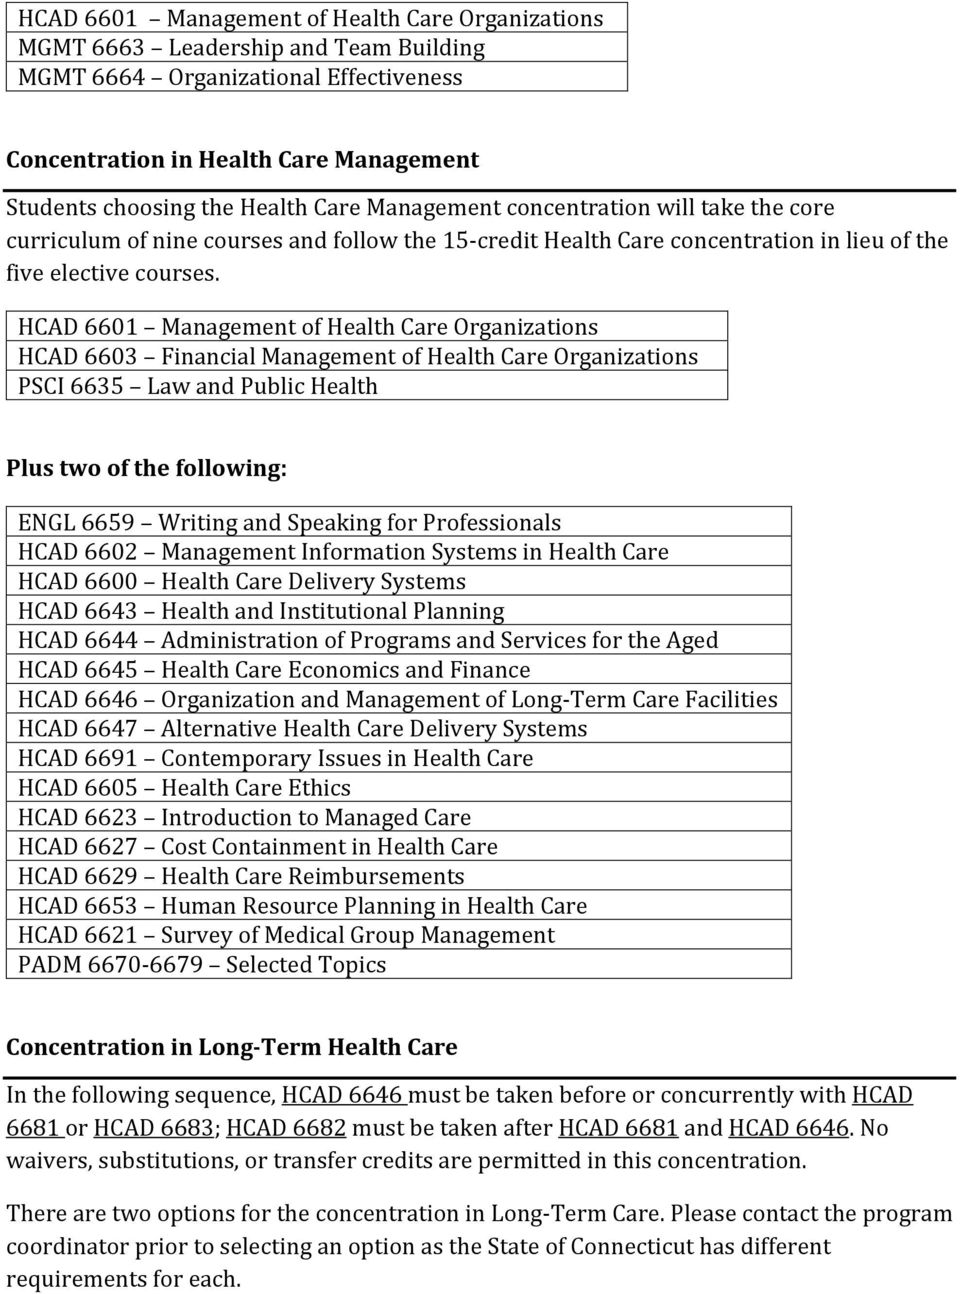 HCAD 6601 Management of Health Care Organizations PSCI 6635 Law and Public Health HCAD 6602 Management Information Systems in Health Care HCAD 6600 Health Care Delivery Systems HCAD 6643 Health and